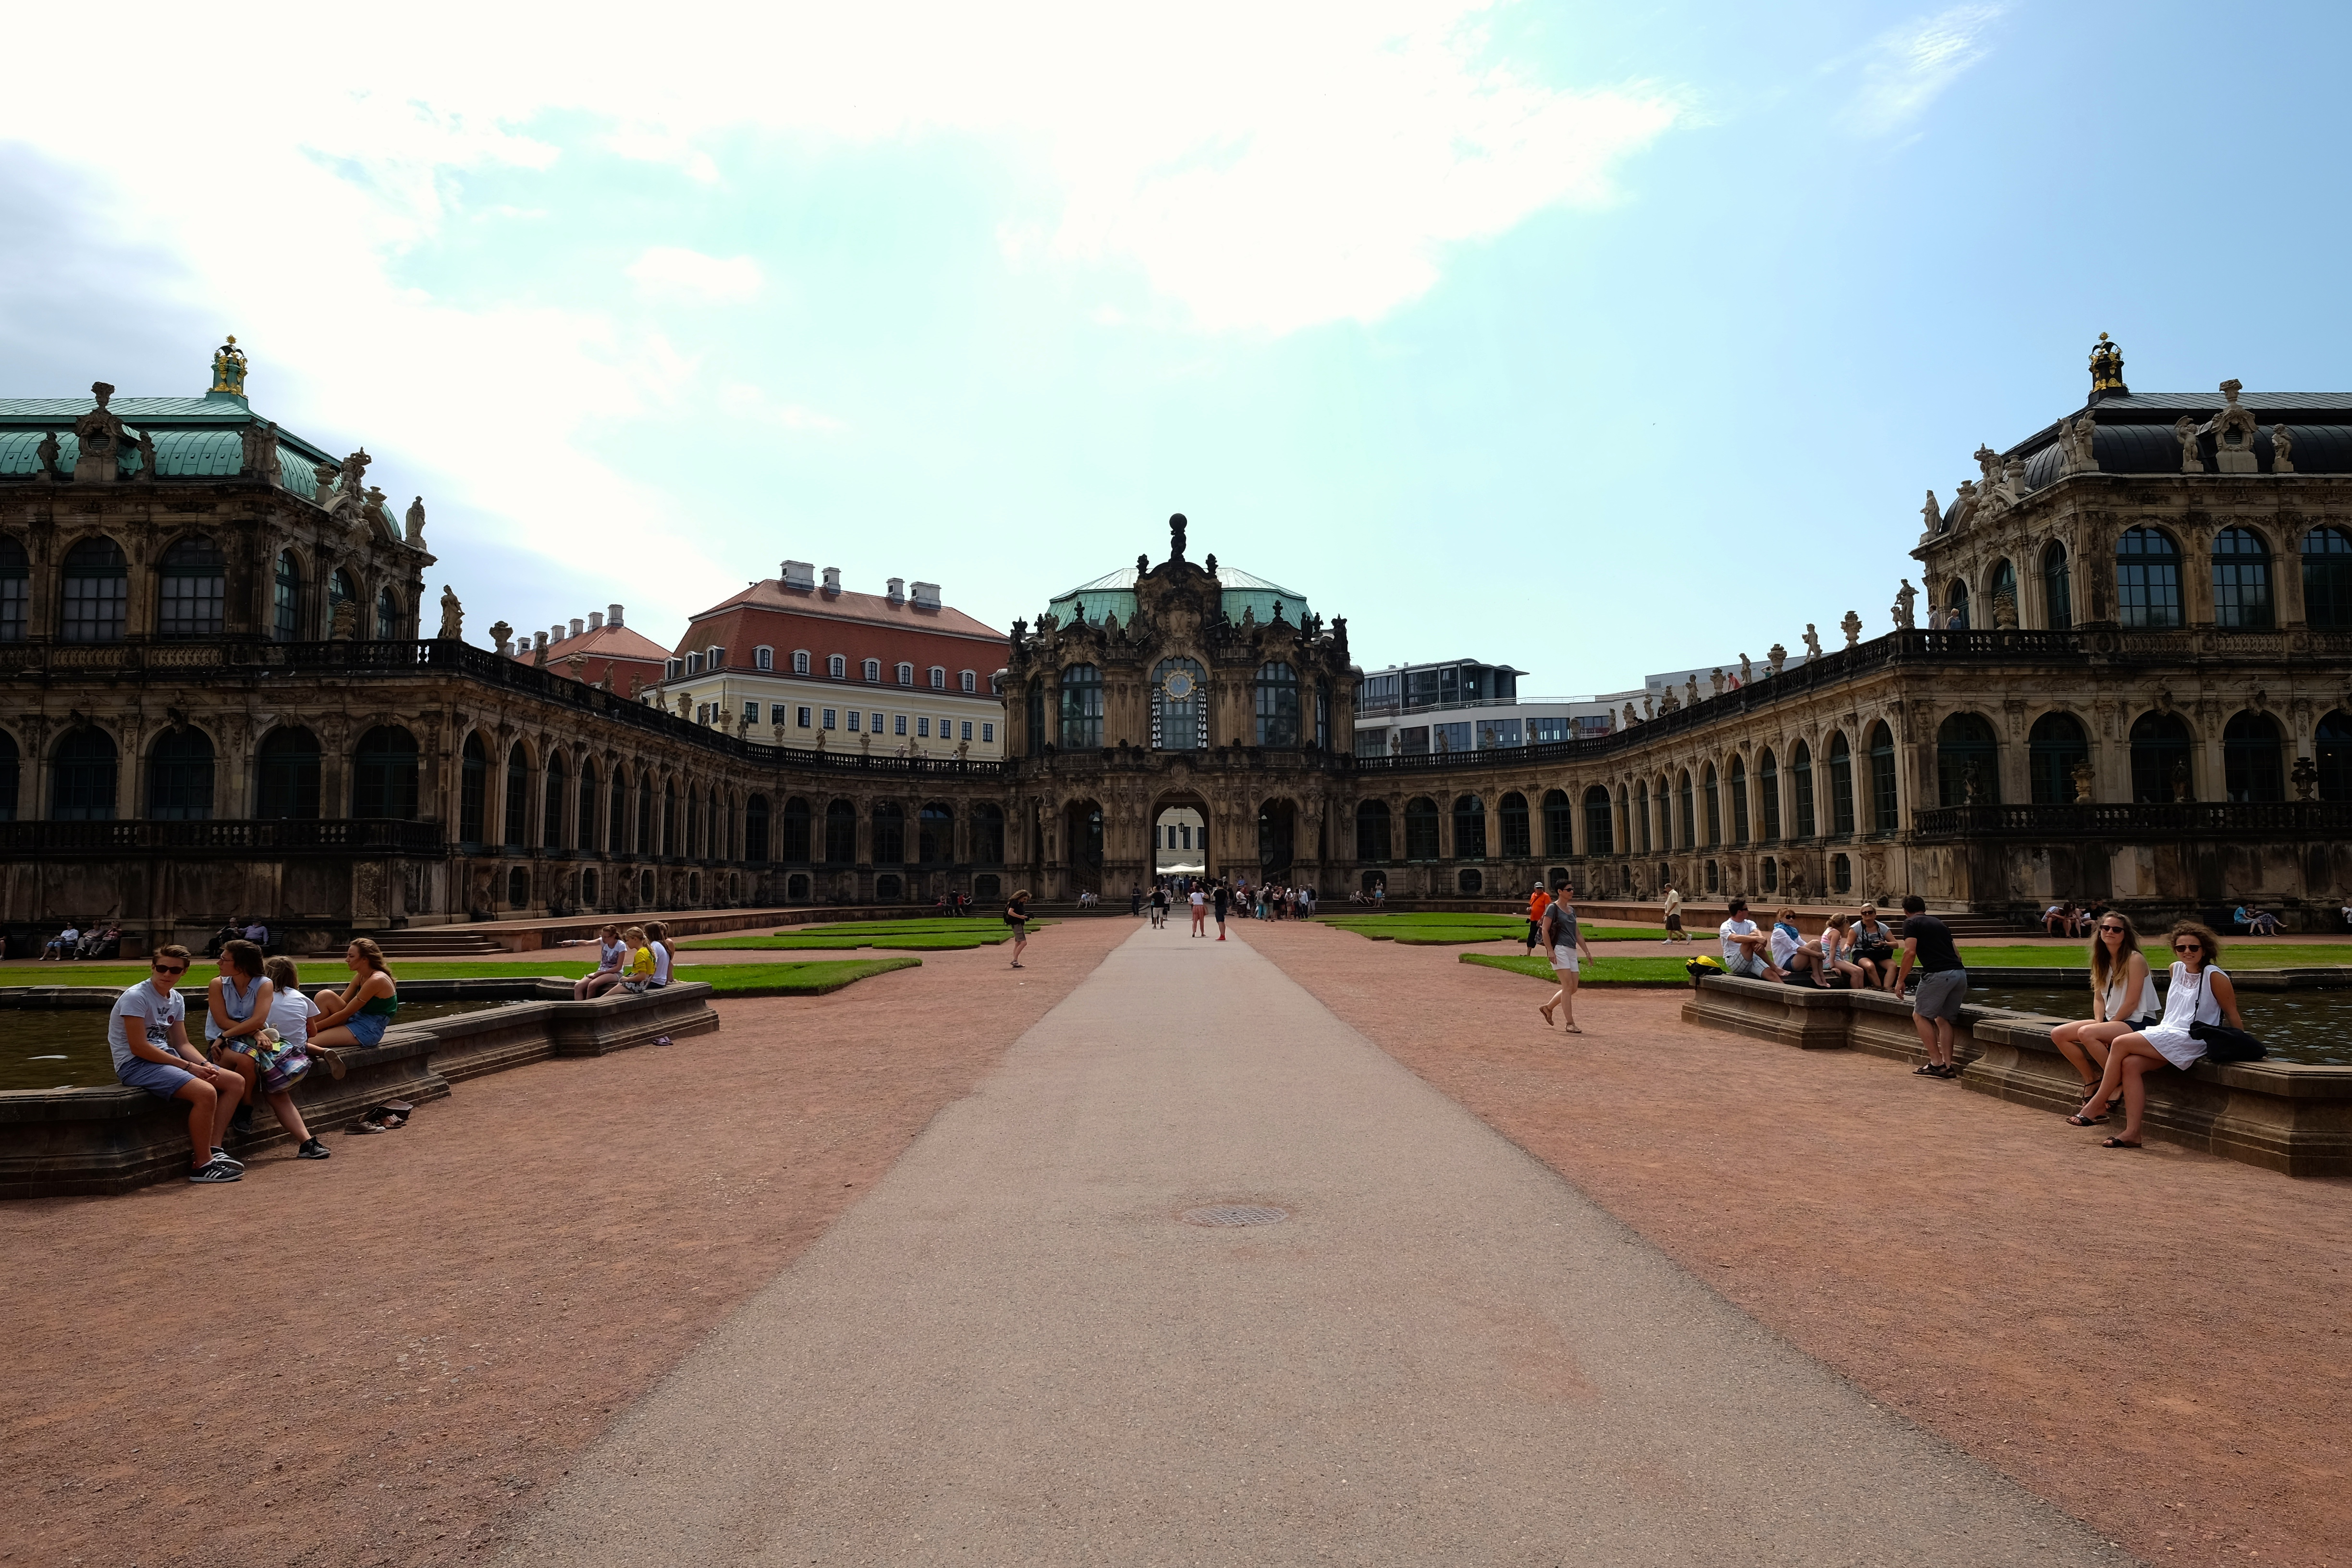 canap dresden Dresden Court inside the Zwinger Palace.